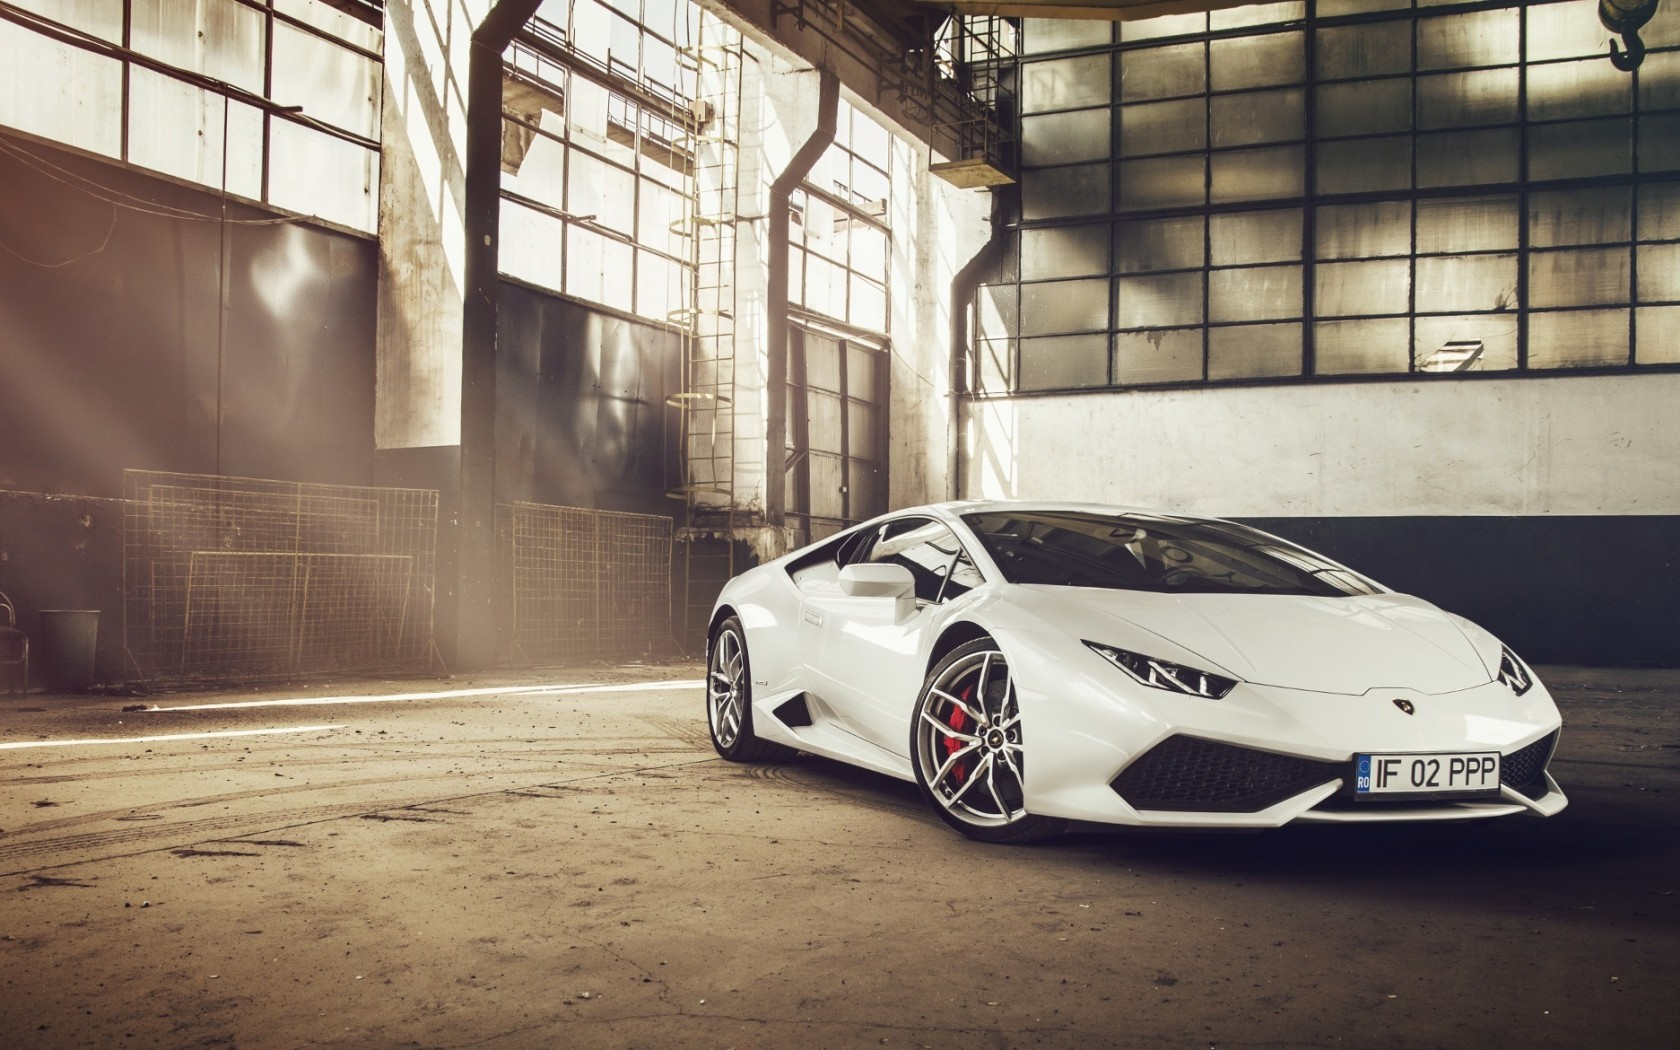 vehicles lamborghini huracan wallpaper - Lamborghini Huracan Wallpaper